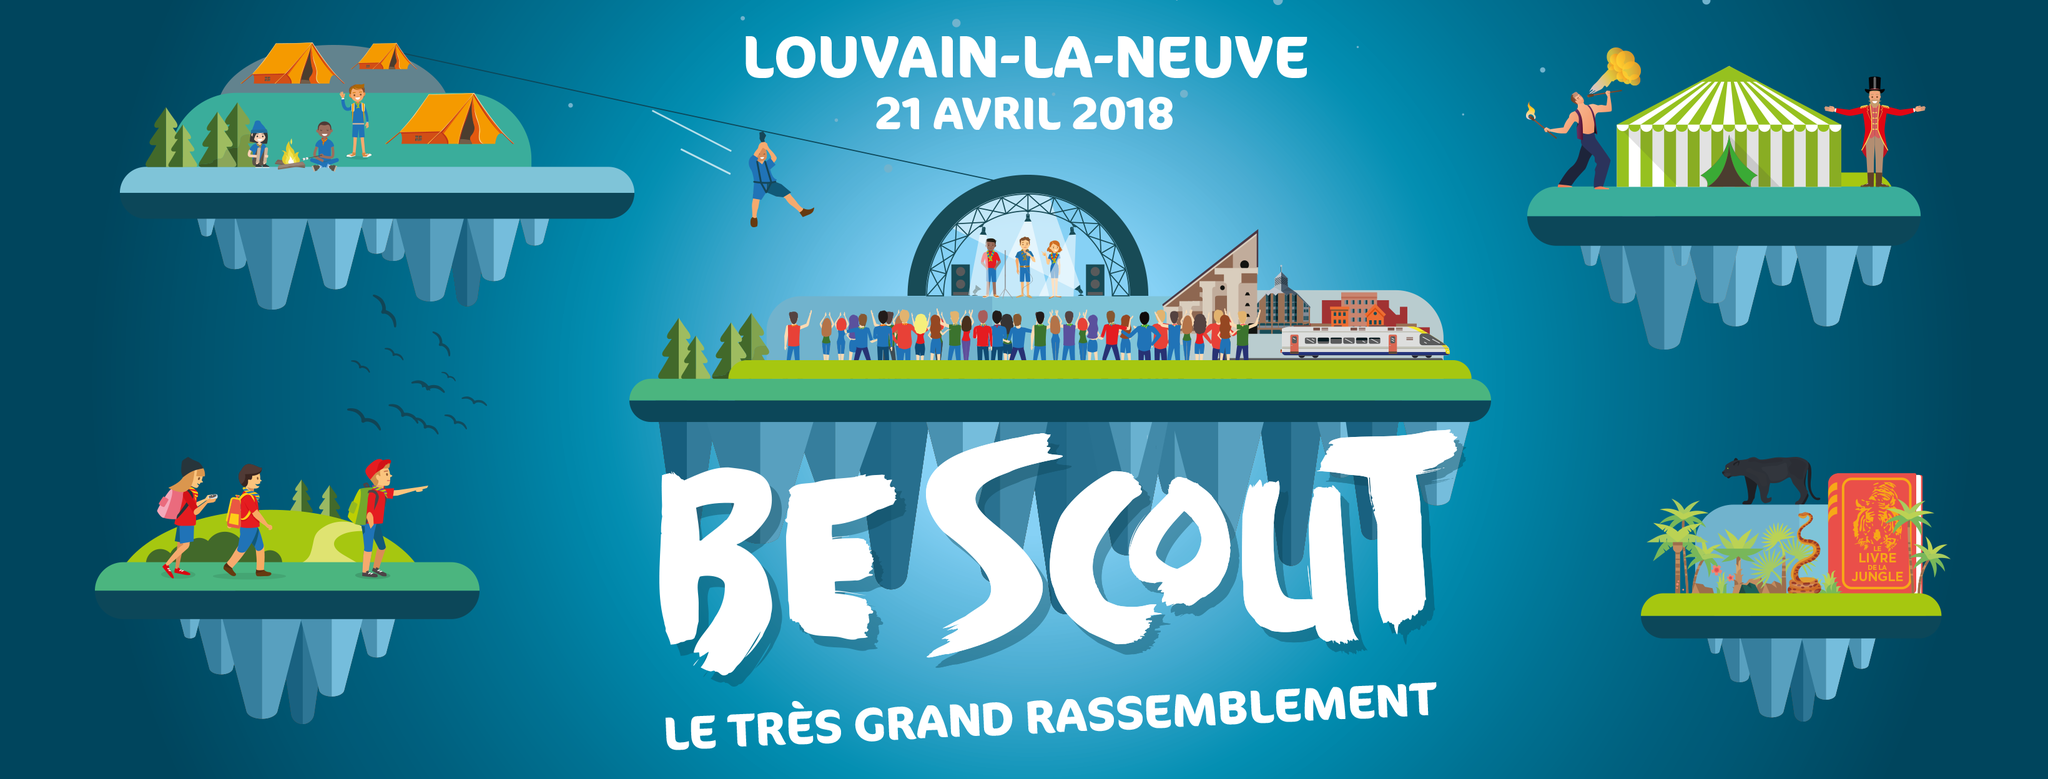 Image result for logo du bescout